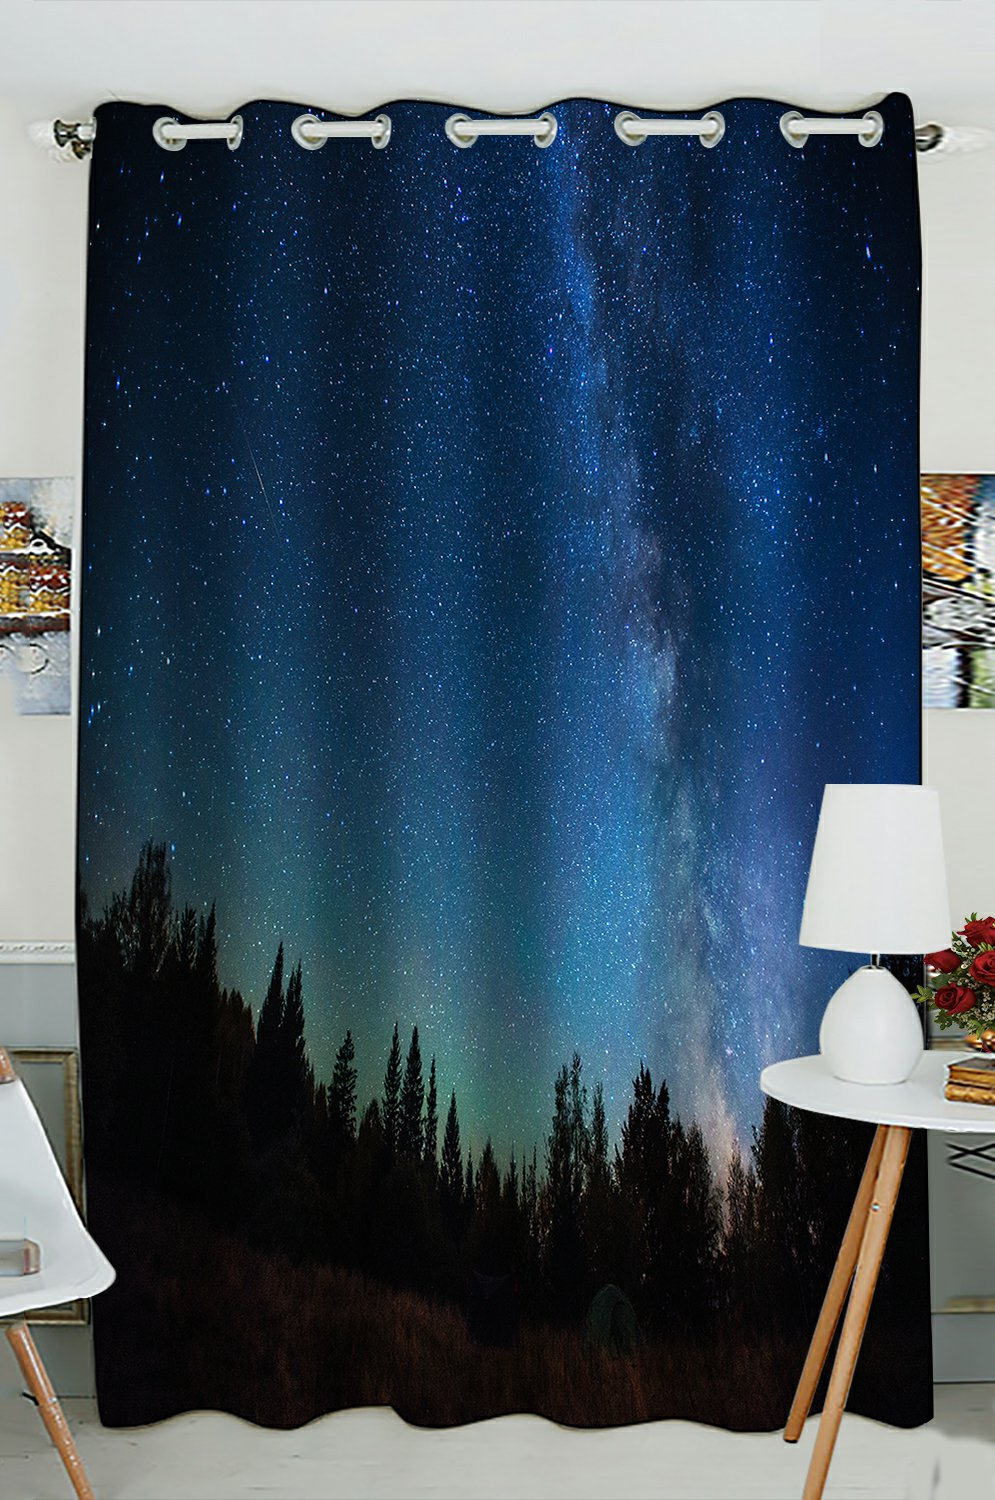 phfzk milky way celestial window curtain night sky forest tree window curtain blackout curtain for bedroom living room kitchen room 52x84 inches one